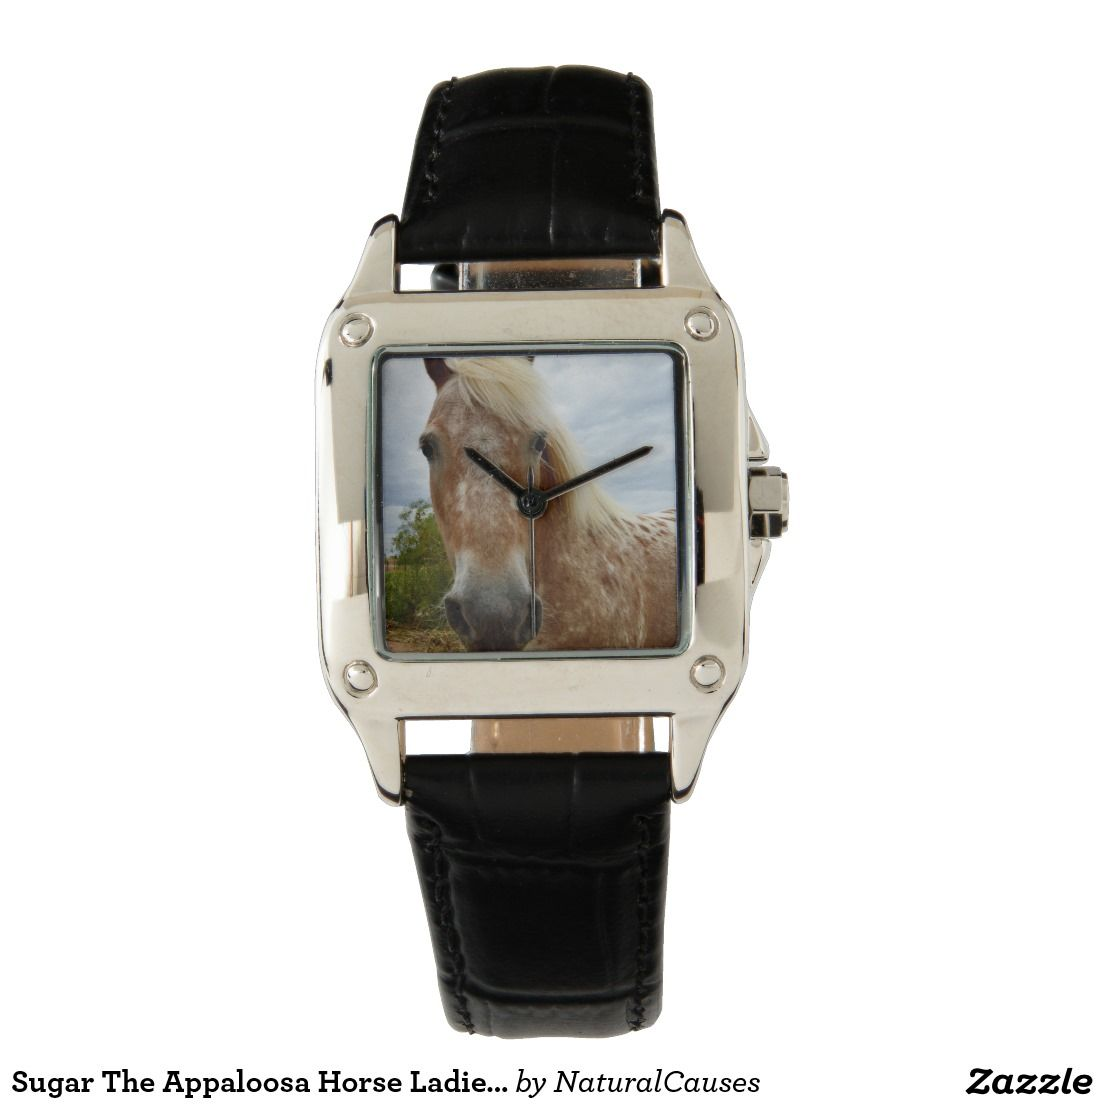 #Horse #Watch #Appaloosa #Face #Ladies #Leather #Pretty #Animal #Pet #Fashion #Accessory #Birthday #Gift #Idea, Sugar The Appaloosa Horse Ladies Leather Watch